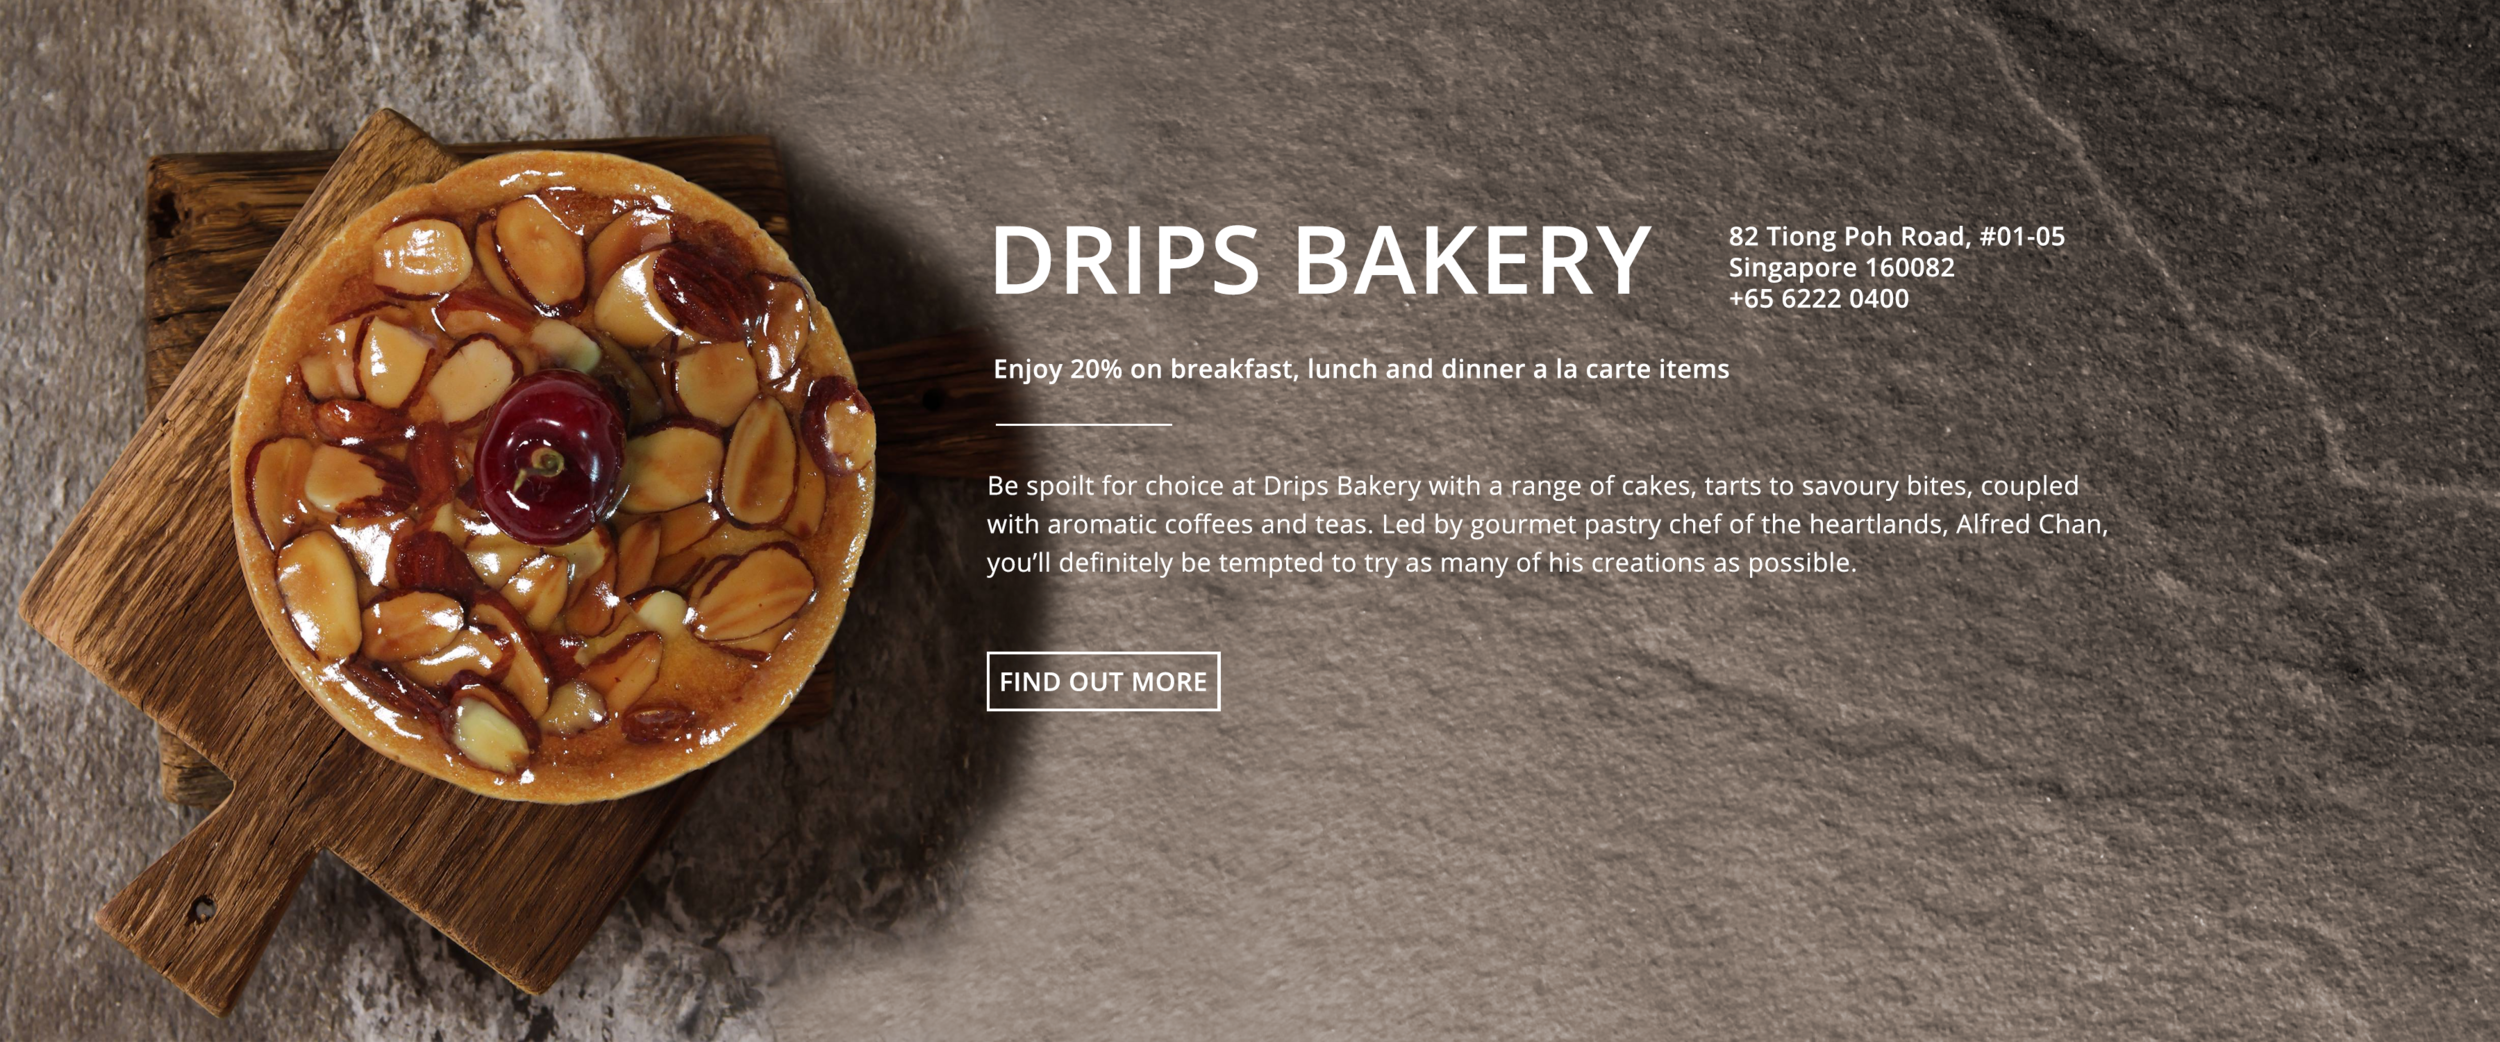 Drips Bakery_2.png